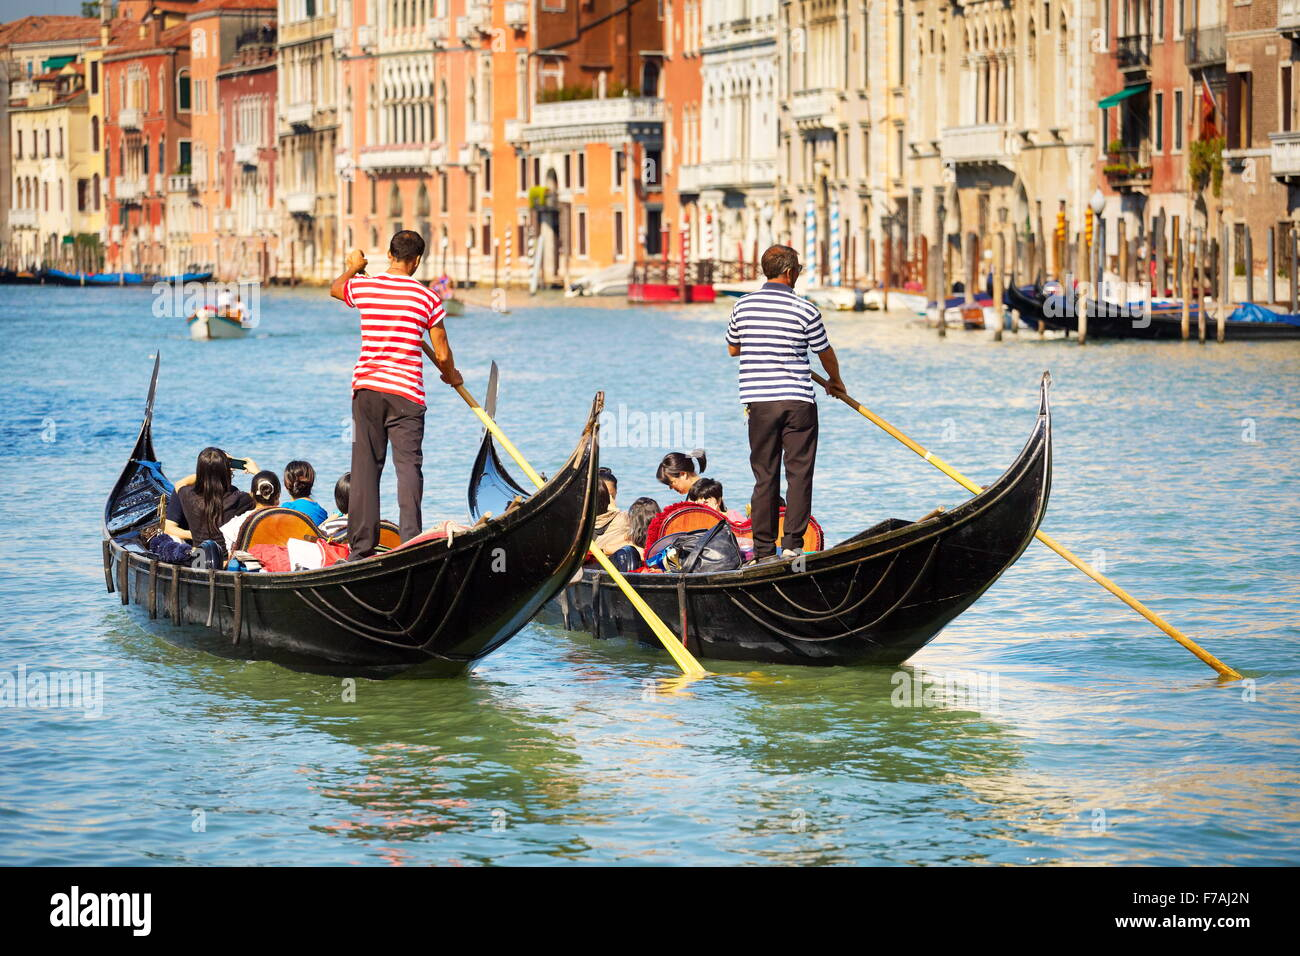 Grand Canal (Canal Grande) - two venetian gondola with tourists, Venice, Italy Stock Photo